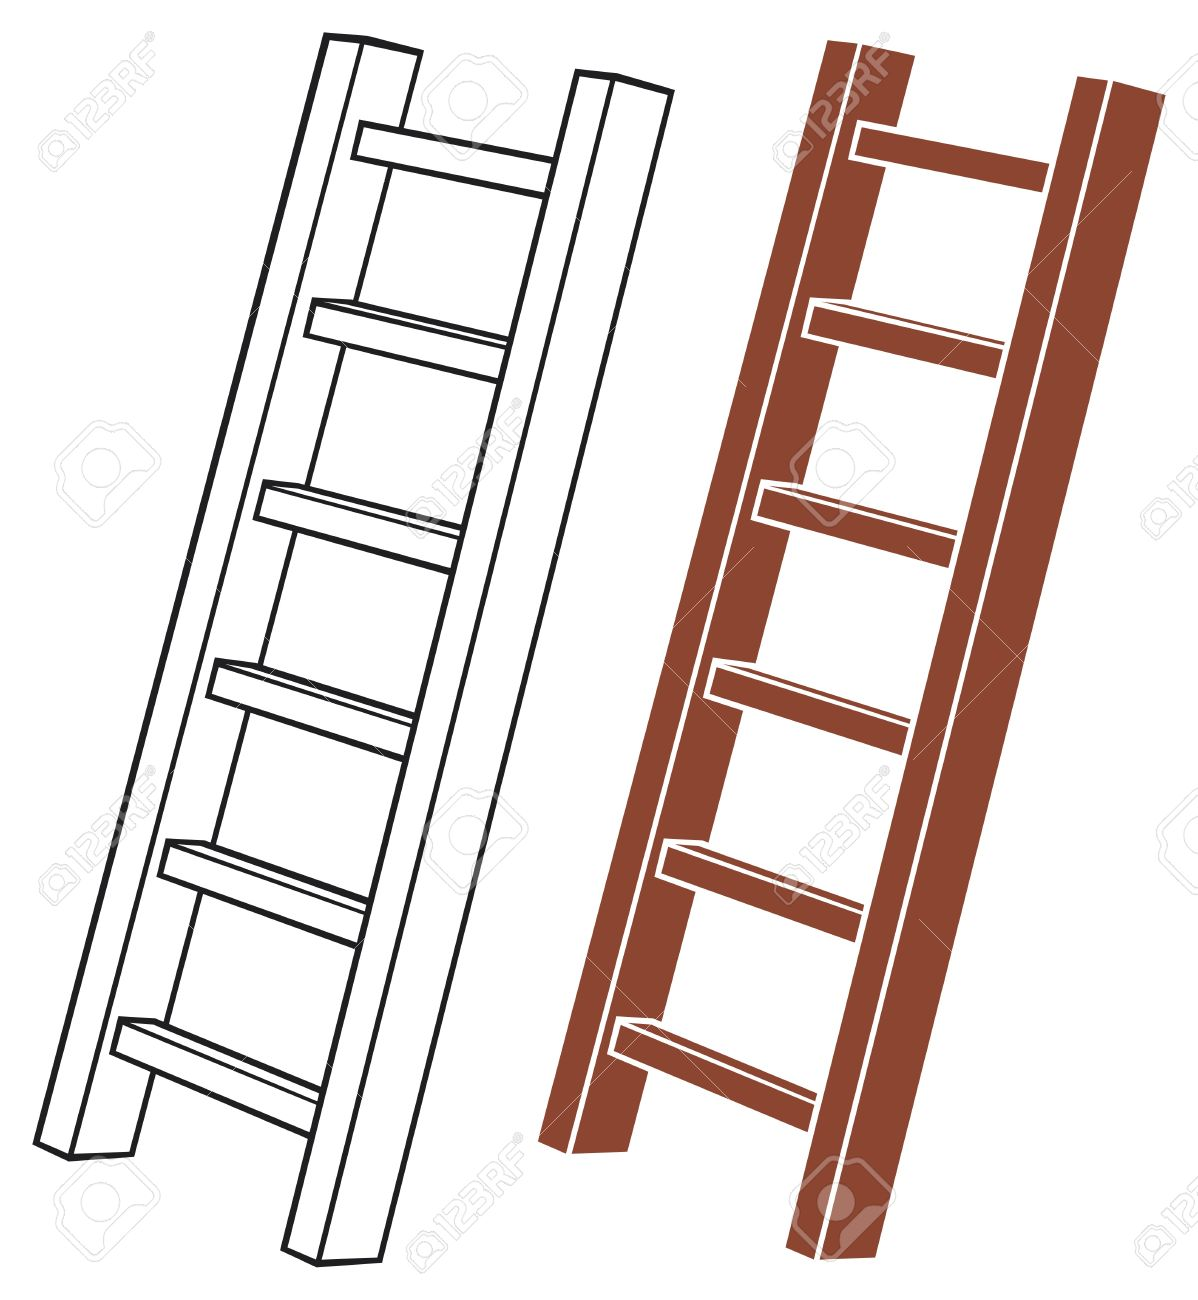 Illustration Of A Wooden Ladder Royalty Free Cliparts, Vectors.